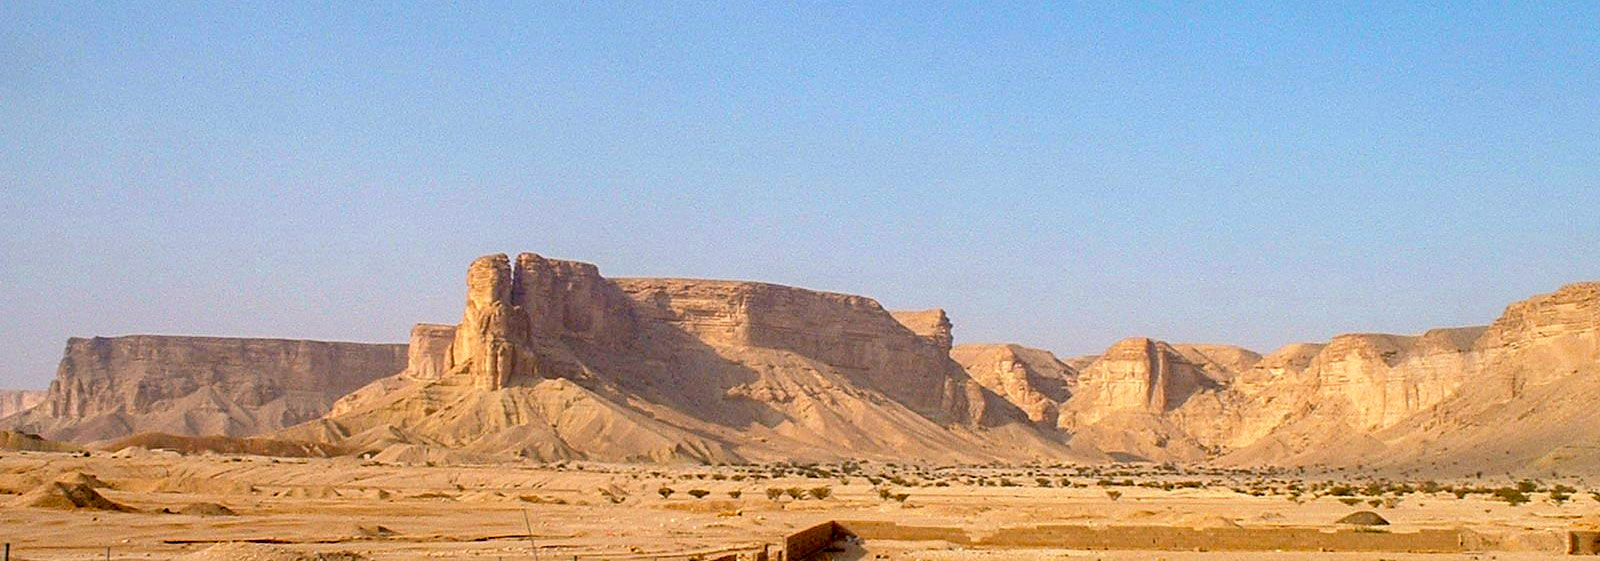 Nejd landscape with the Tuwaiq Escarpment in Saudi Arabia